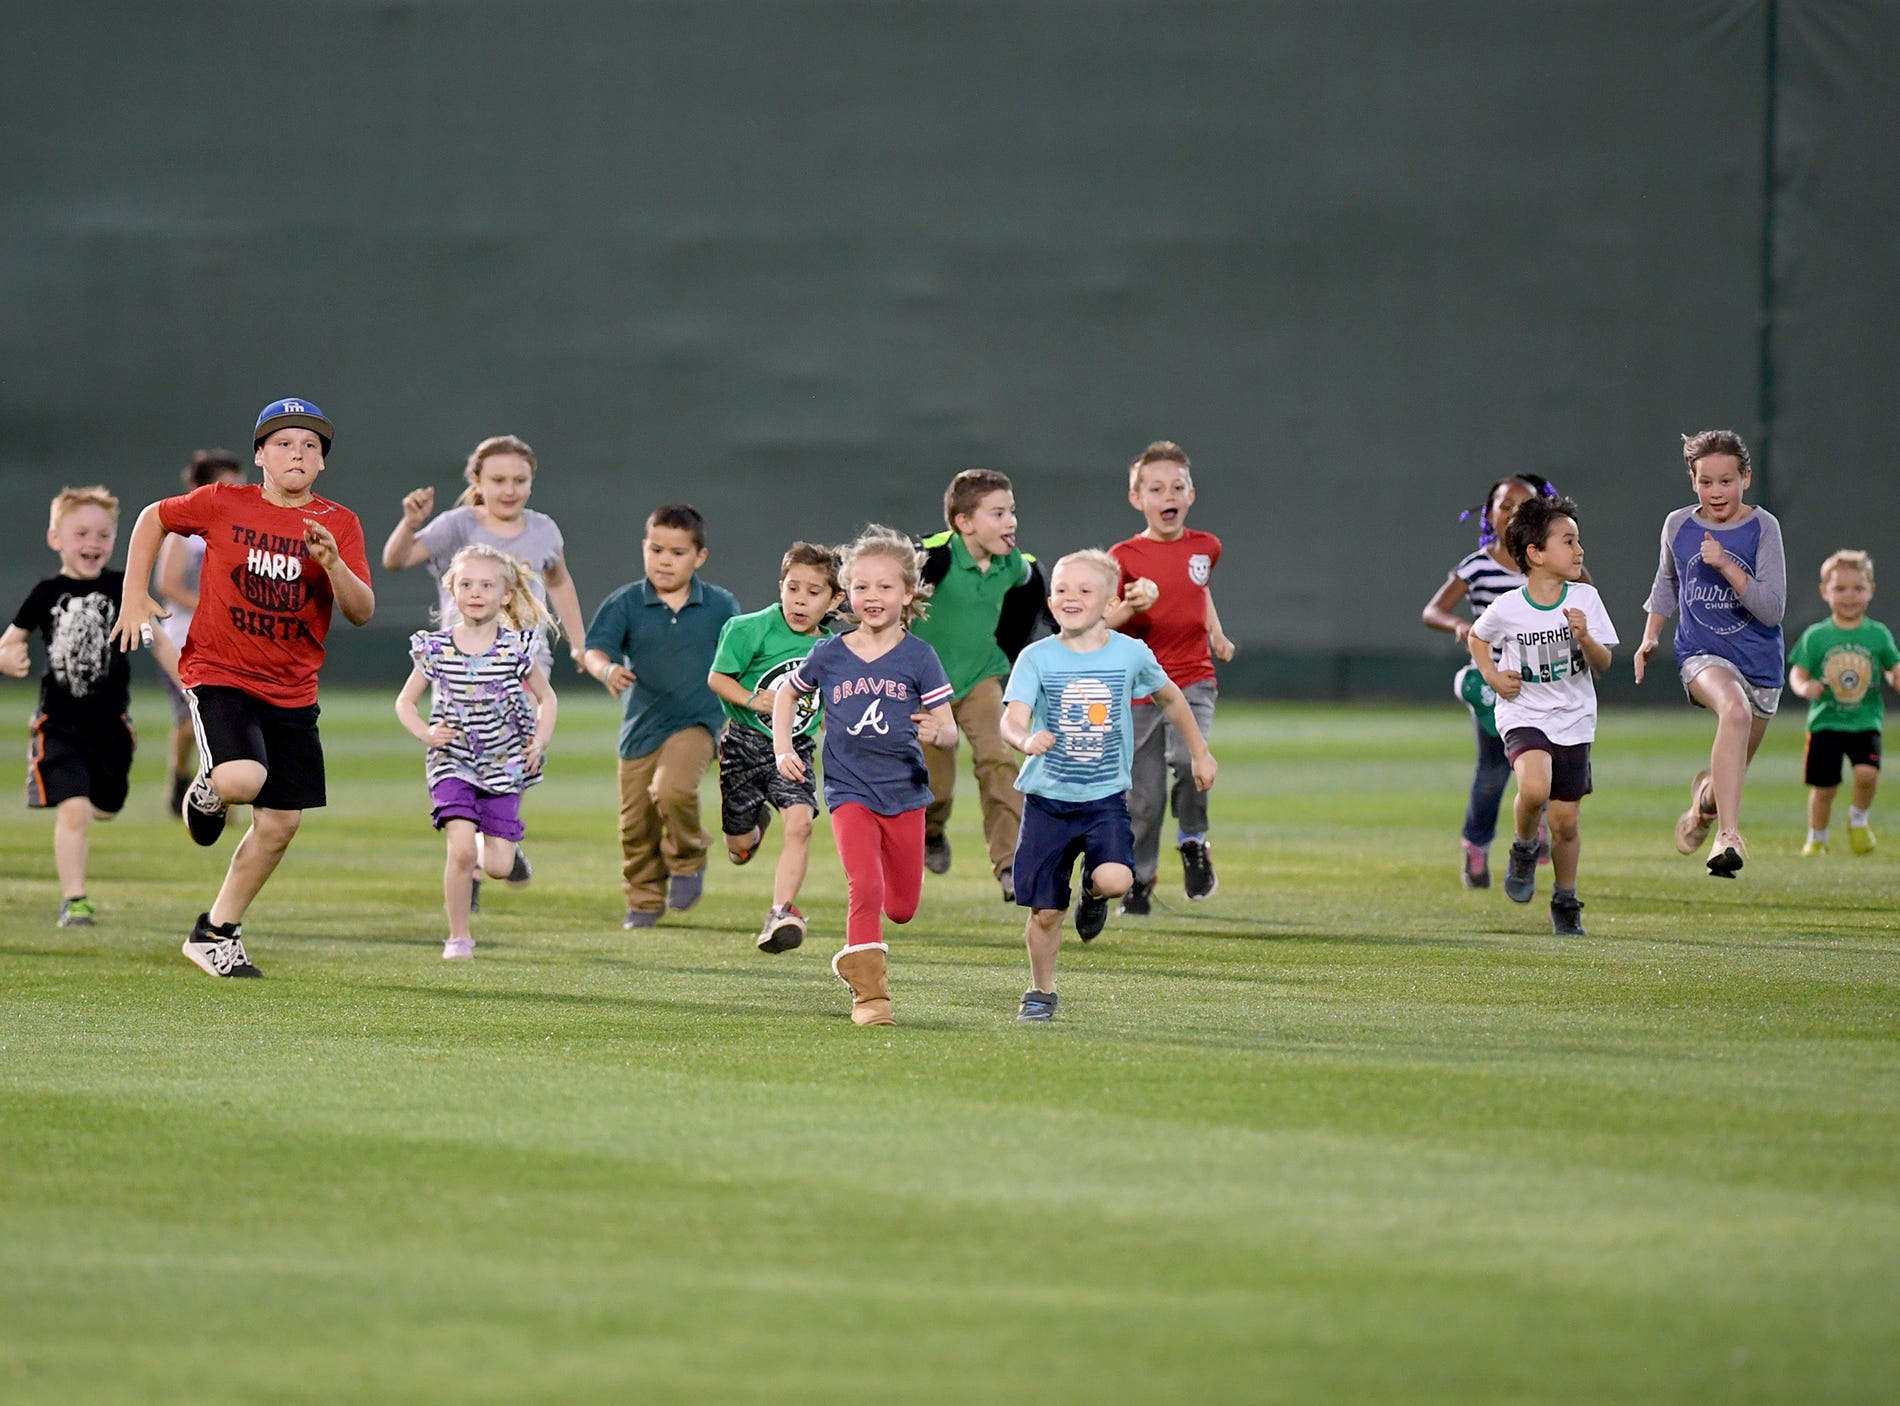 About 20 children participated in the General's Kids' Fruit Run between innings of the game against the Chattanooga Lookouts, Thursday, April 11.